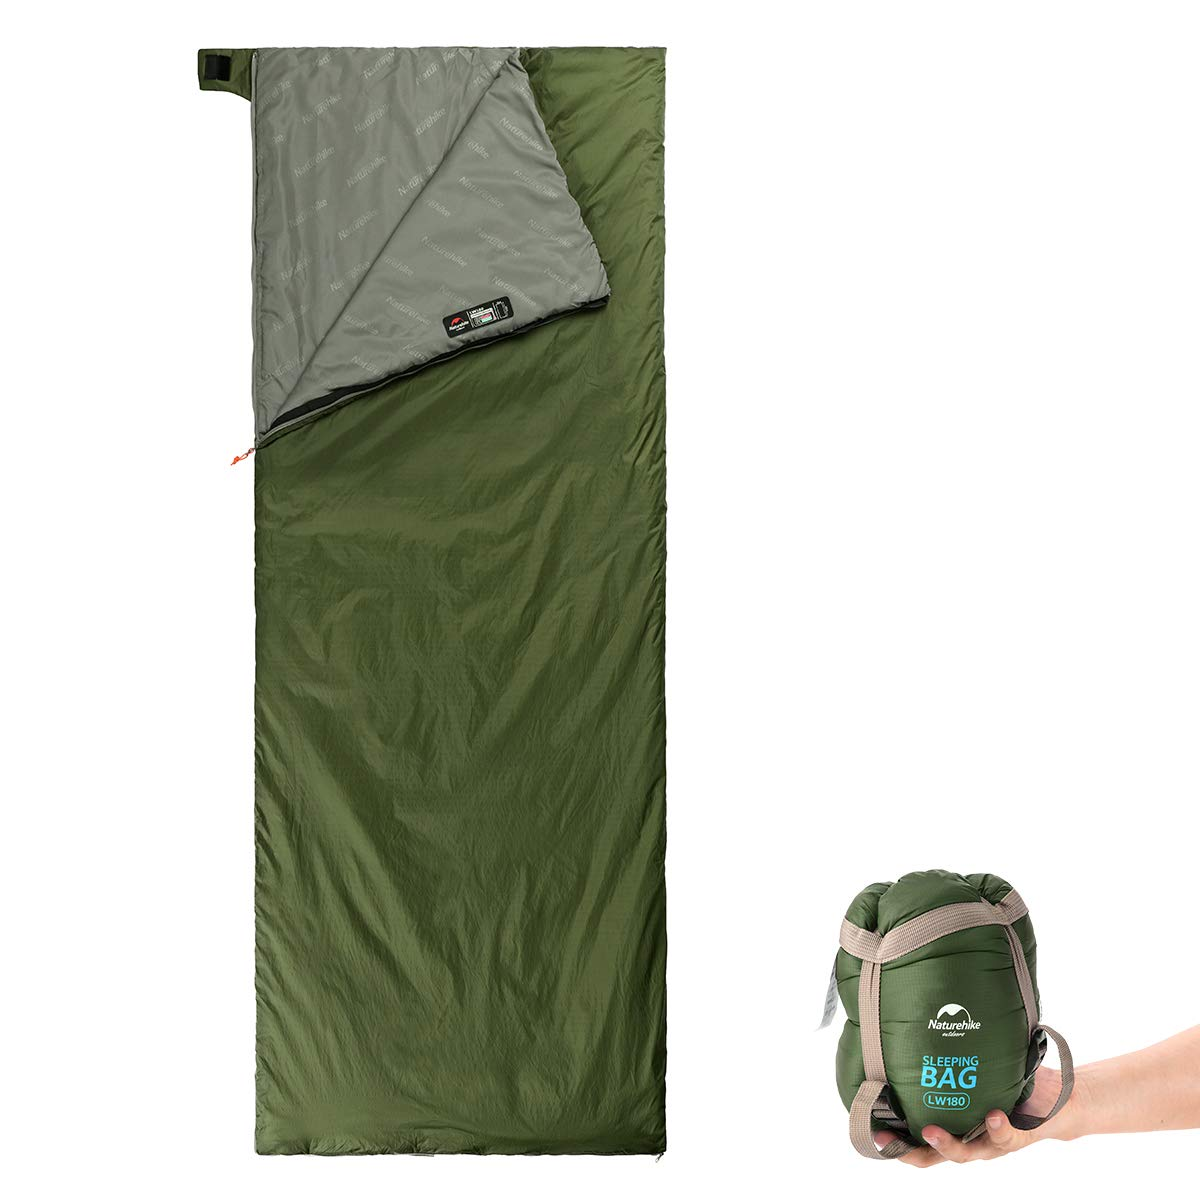 An image of Naturehike Ultralight 50 Degree Cotton Sleeping Bag